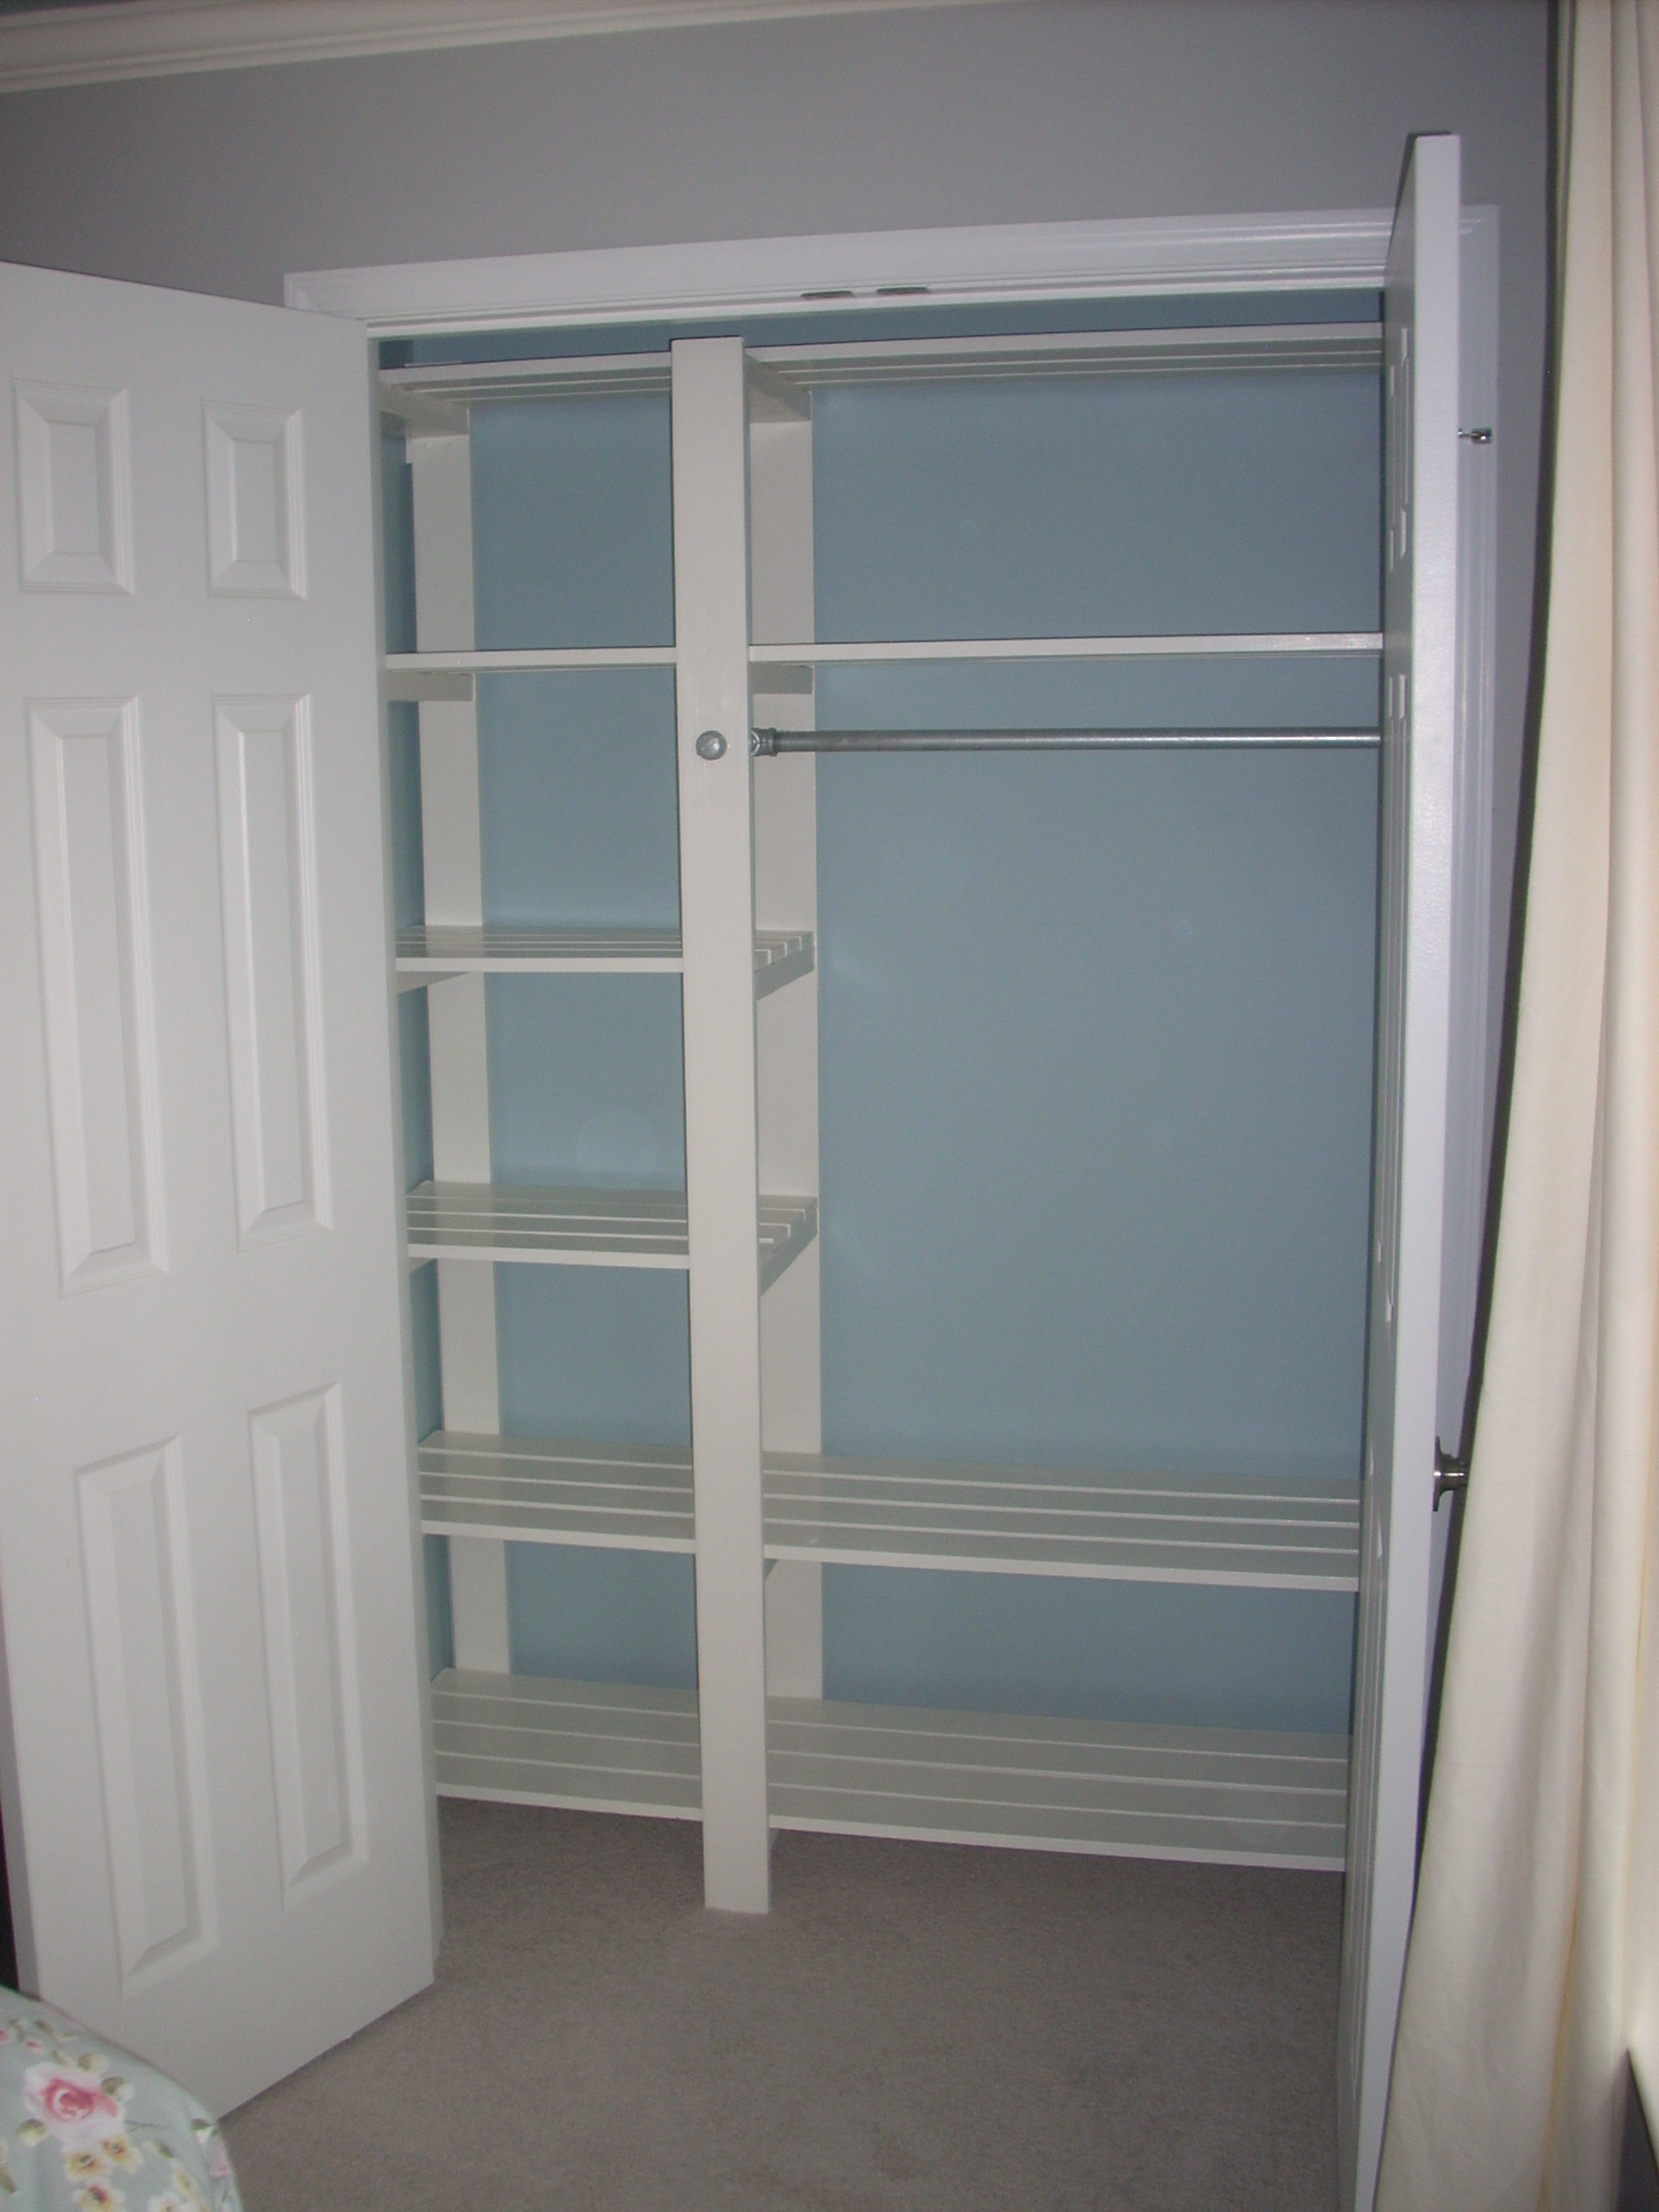 ana white guest bedroom closet diy projects. Black Bedroom Furniture Sets. Home Design Ideas